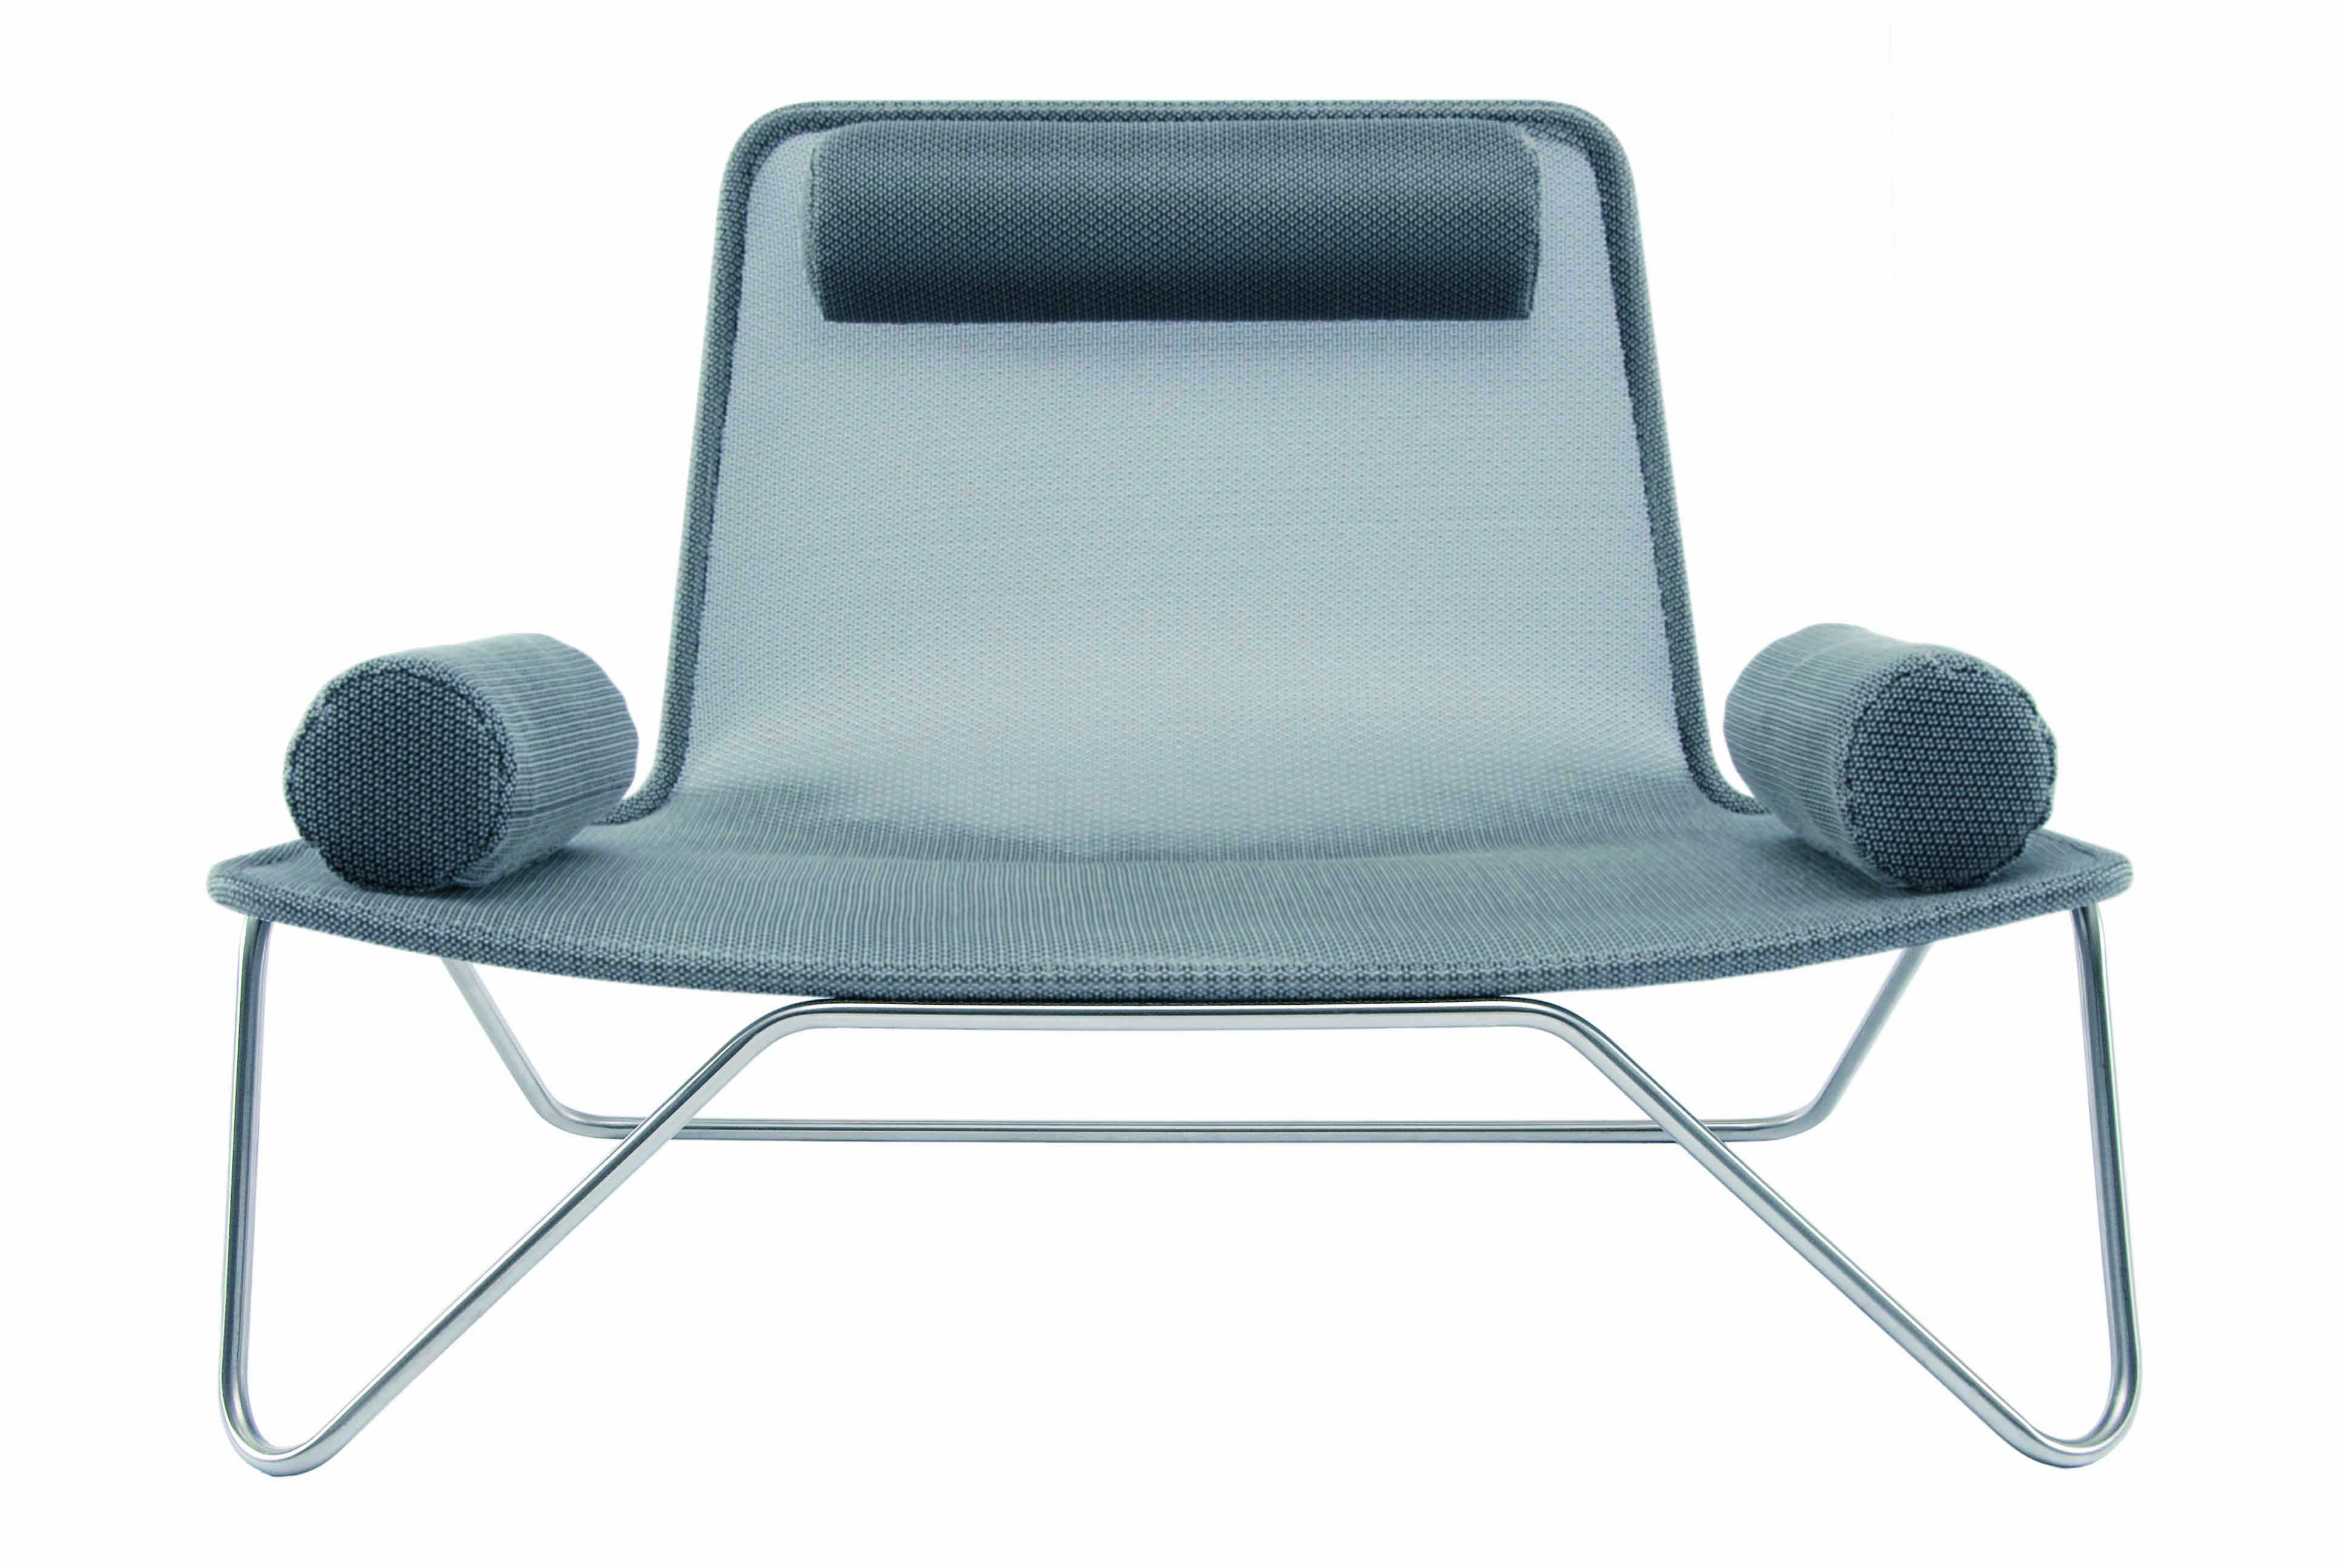 Awe Inspiring Dwell Lounge Chair By Blu Dot Media Slideshow 1 Archello Ncnpc Chair Design For Home Ncnpcorg